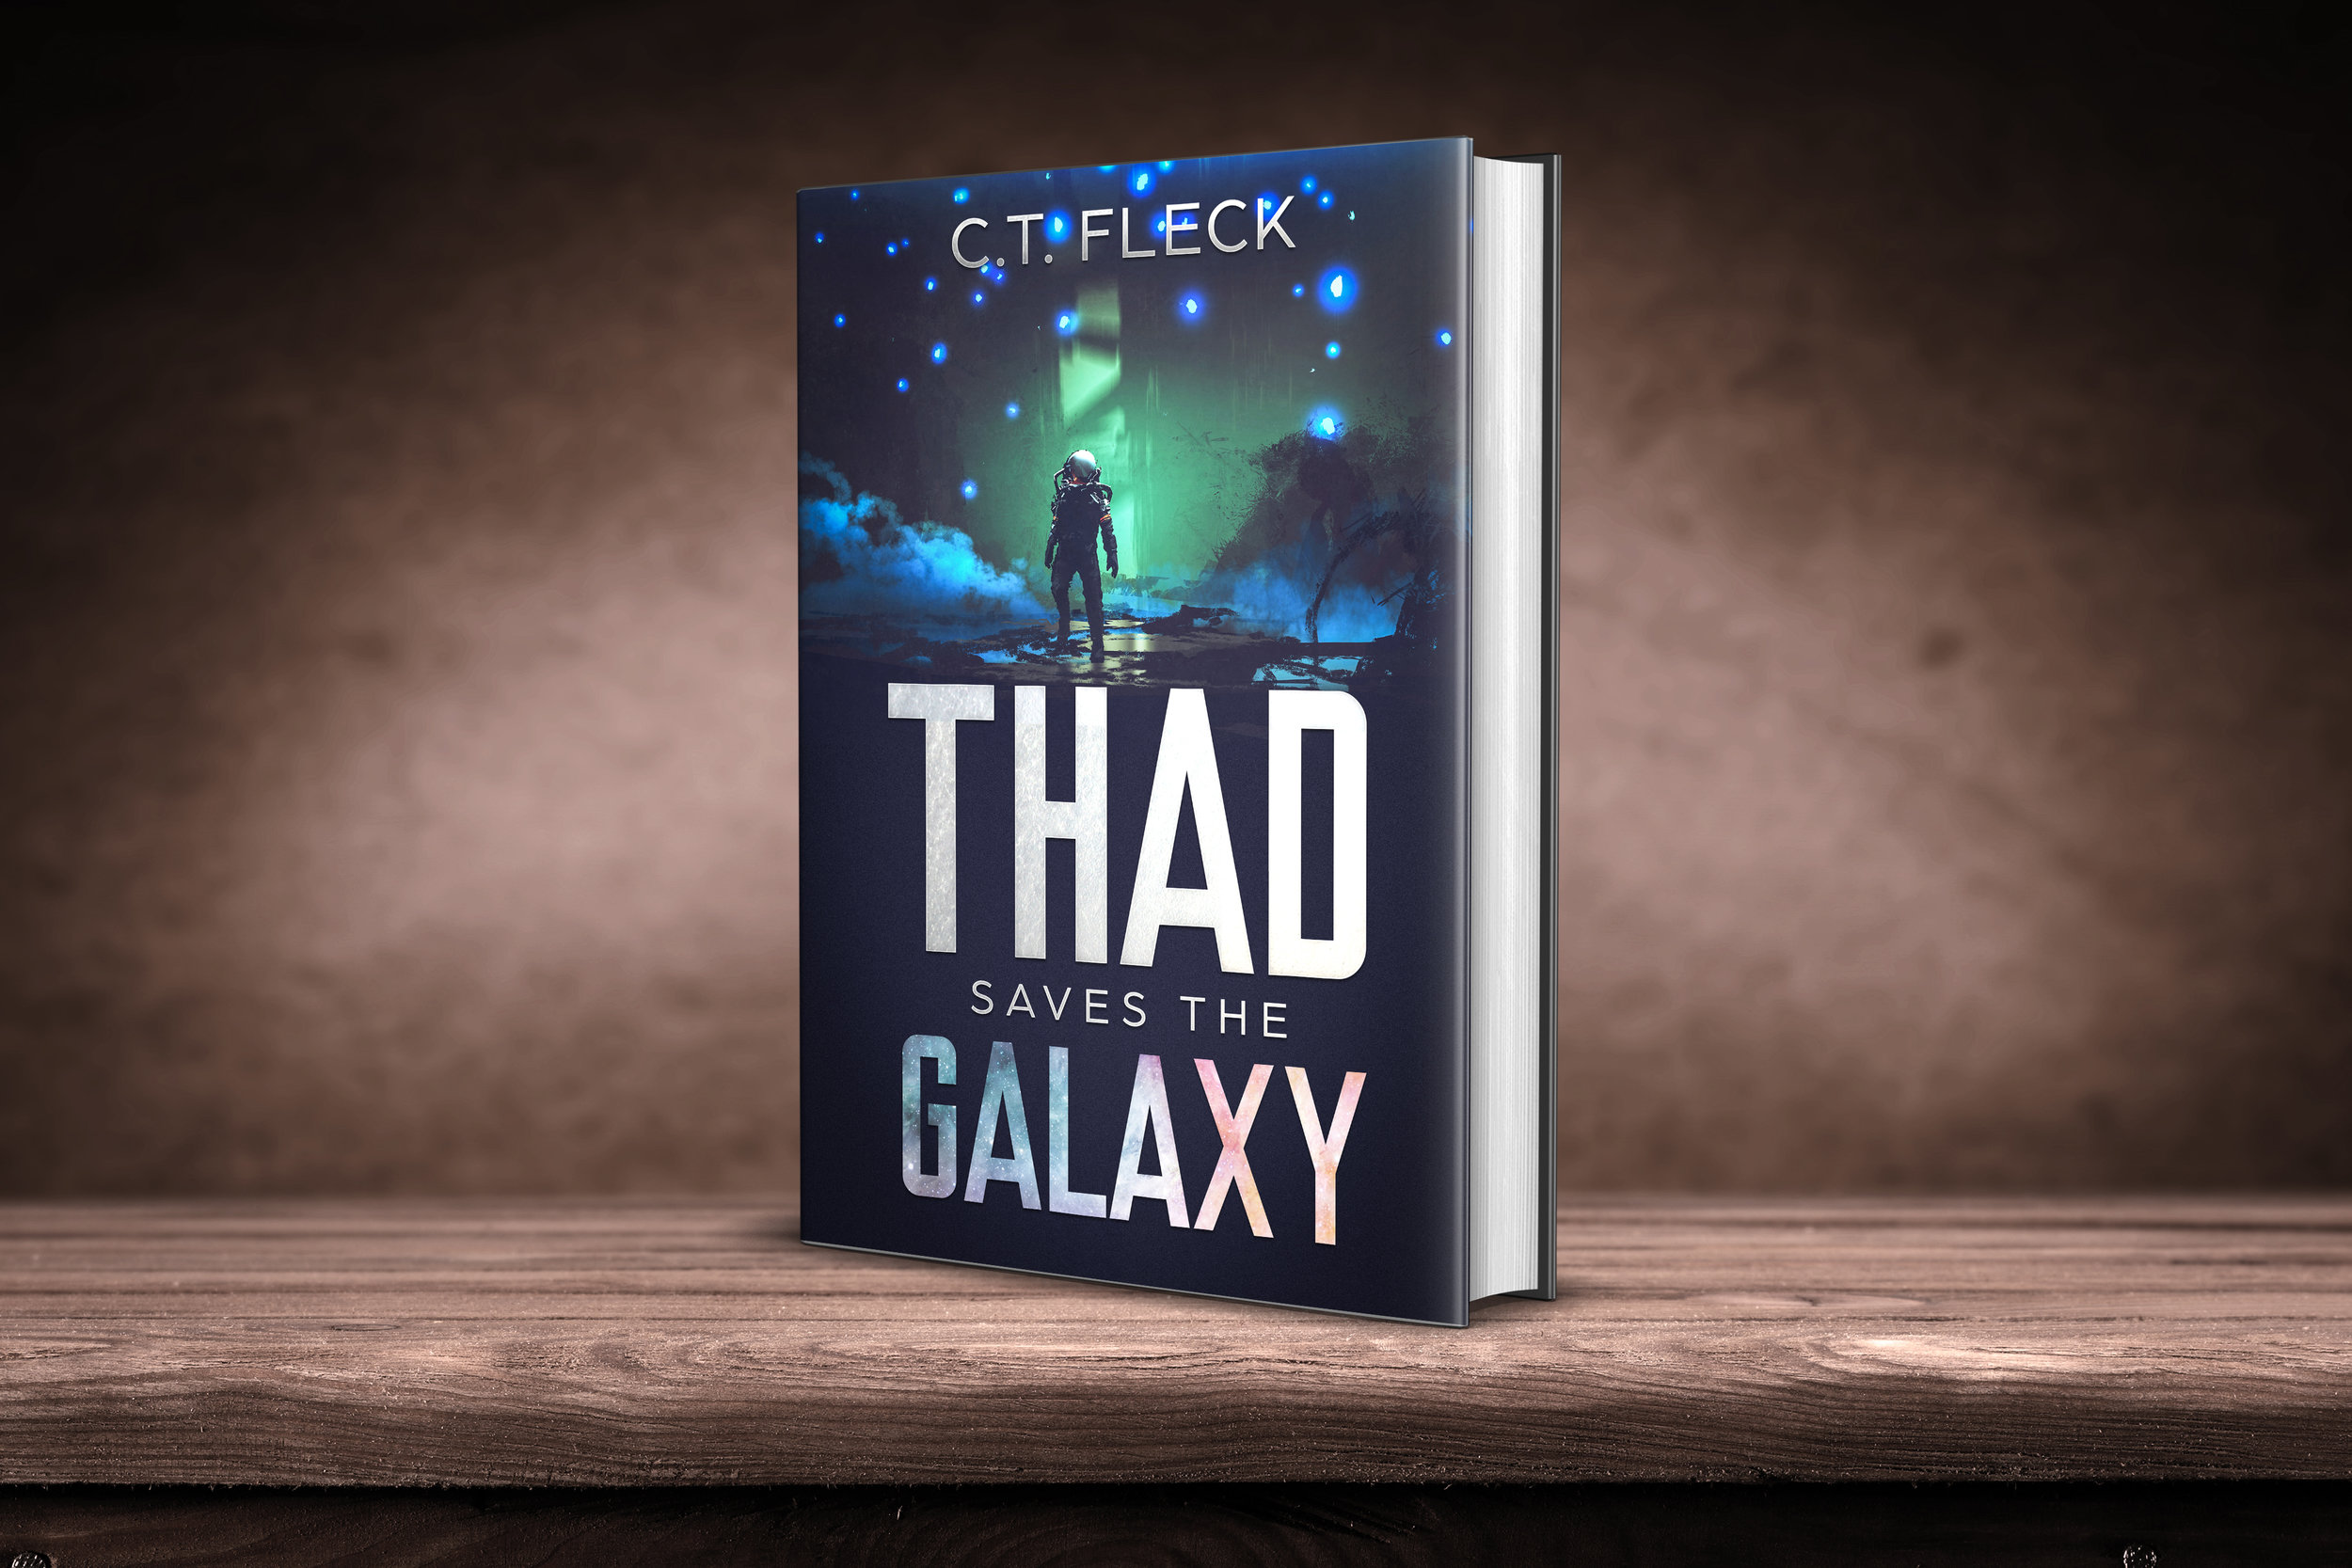 Hitchiker's Guide meets Starship Troopers meets Mars Attacks in this hilarious romp across the Milky Way.